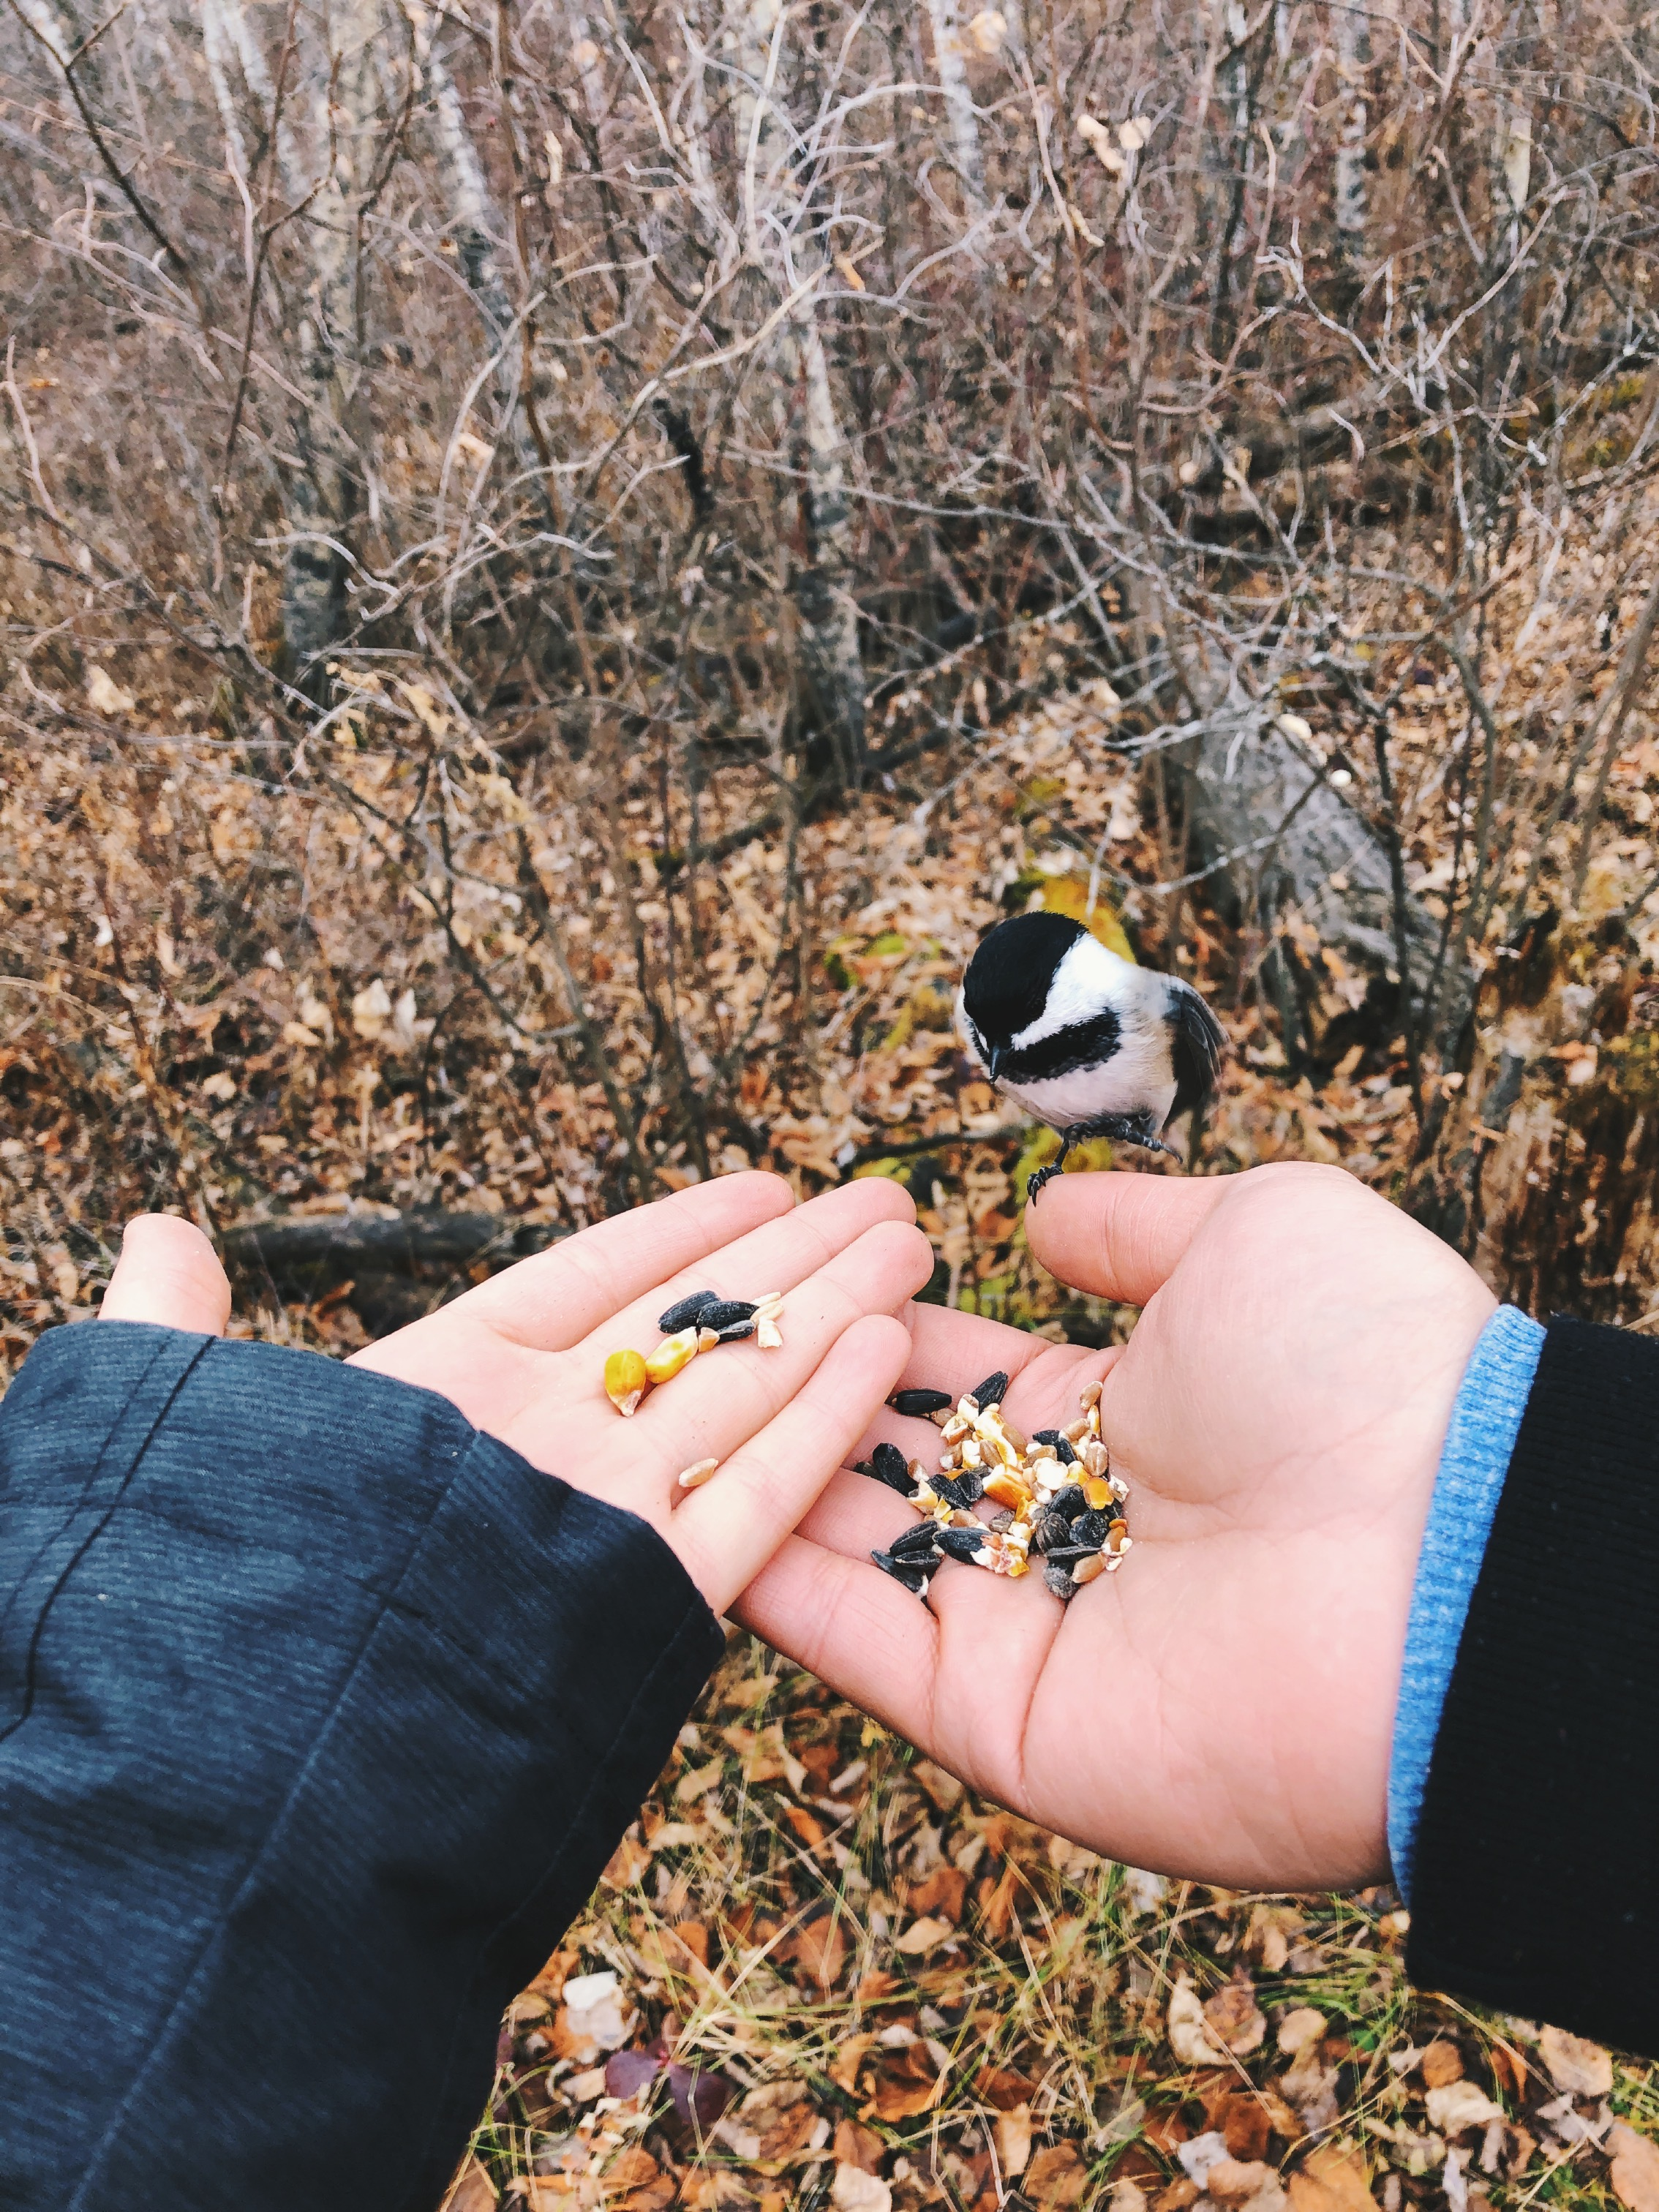 couples hands holding bird seed with a cute small bird sitting on mans hand